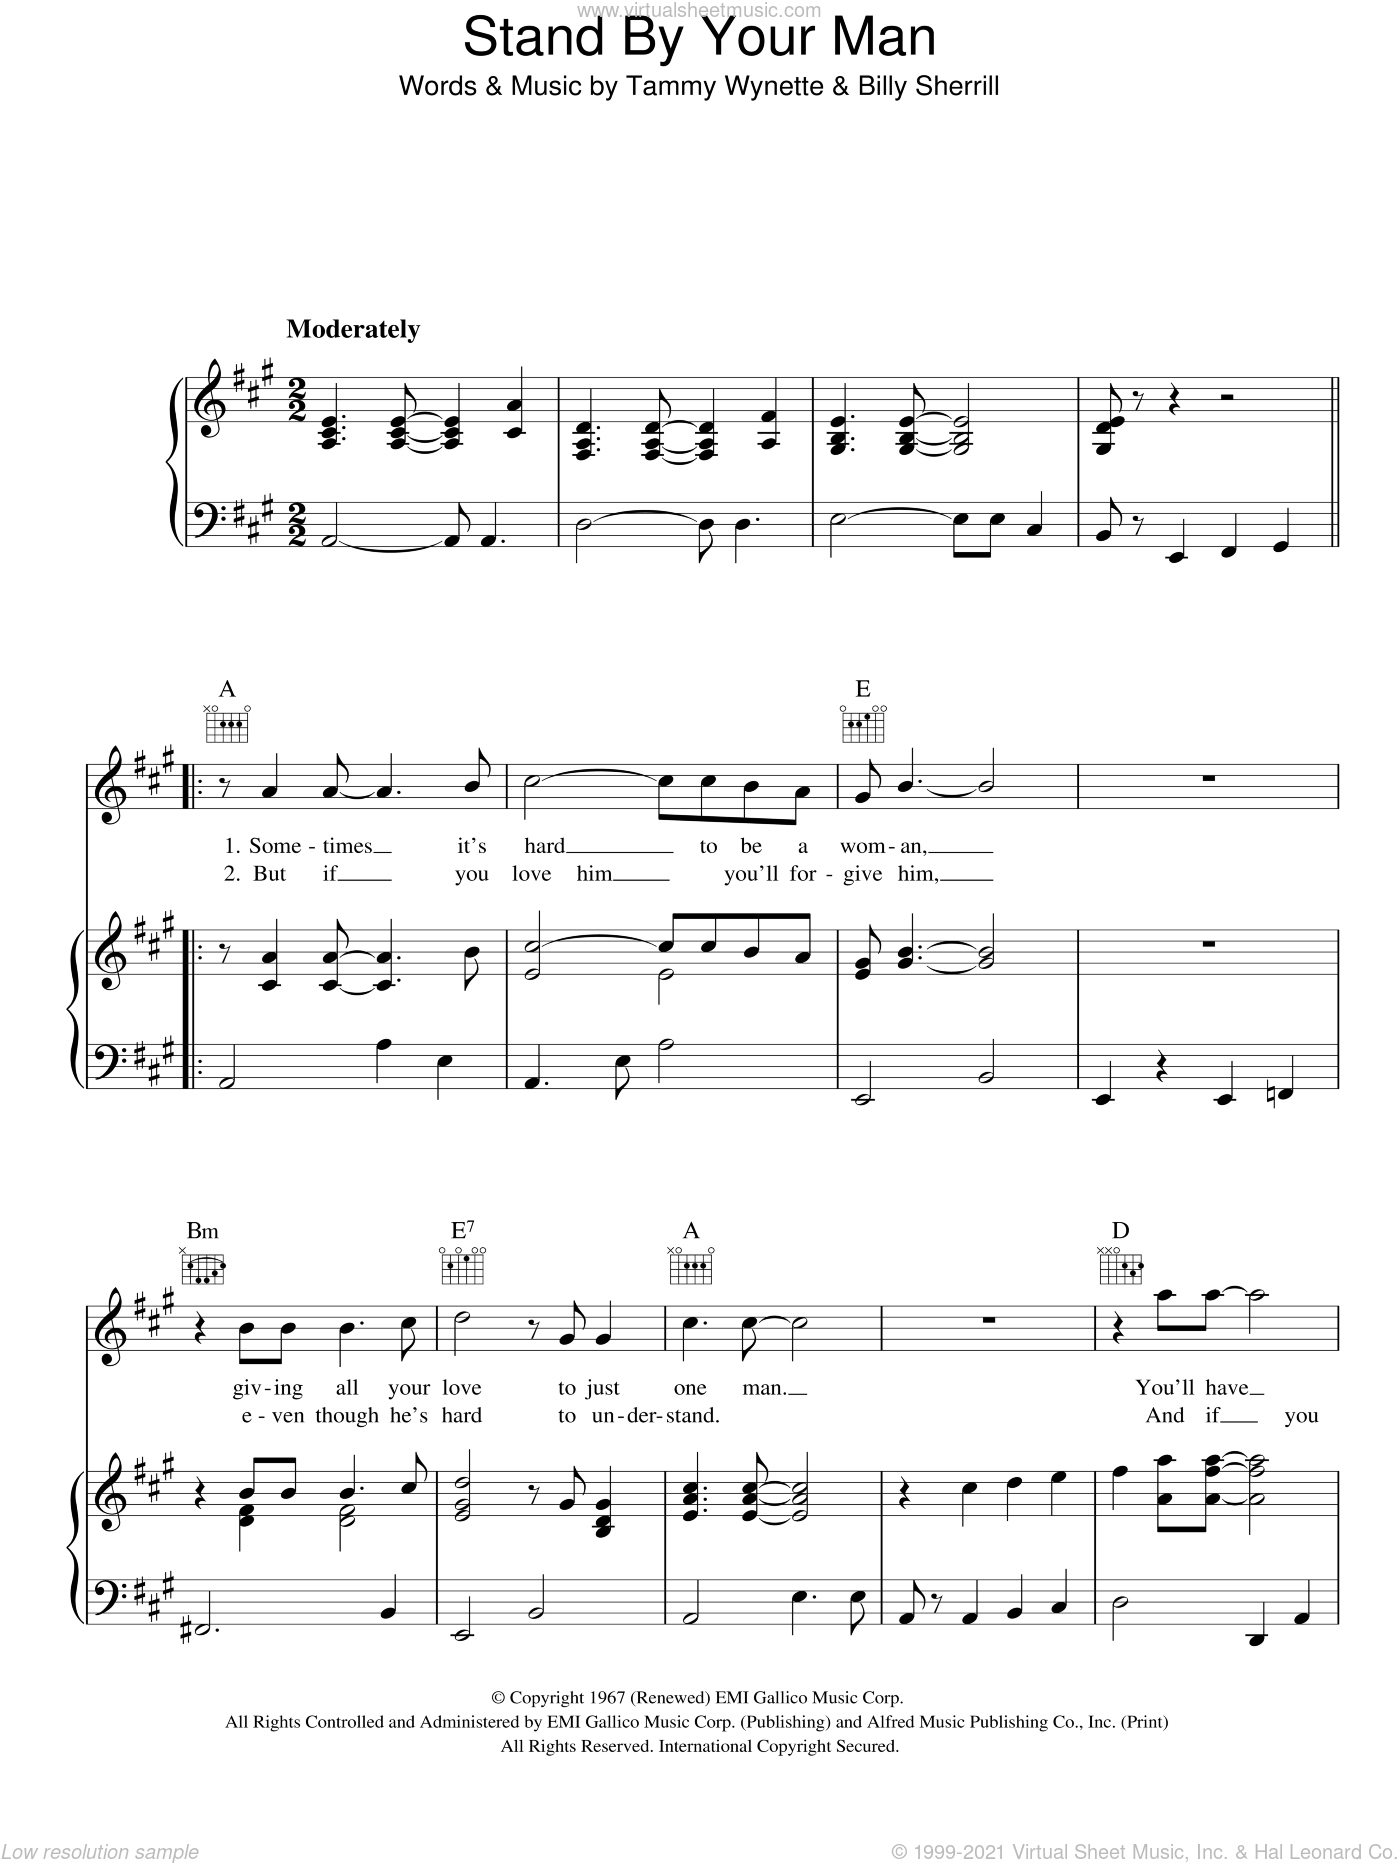 Stand By Your Man sheet music for voice, piano or guitar by Billy Sherrill and Tammy Wynette. Score Image Preview.